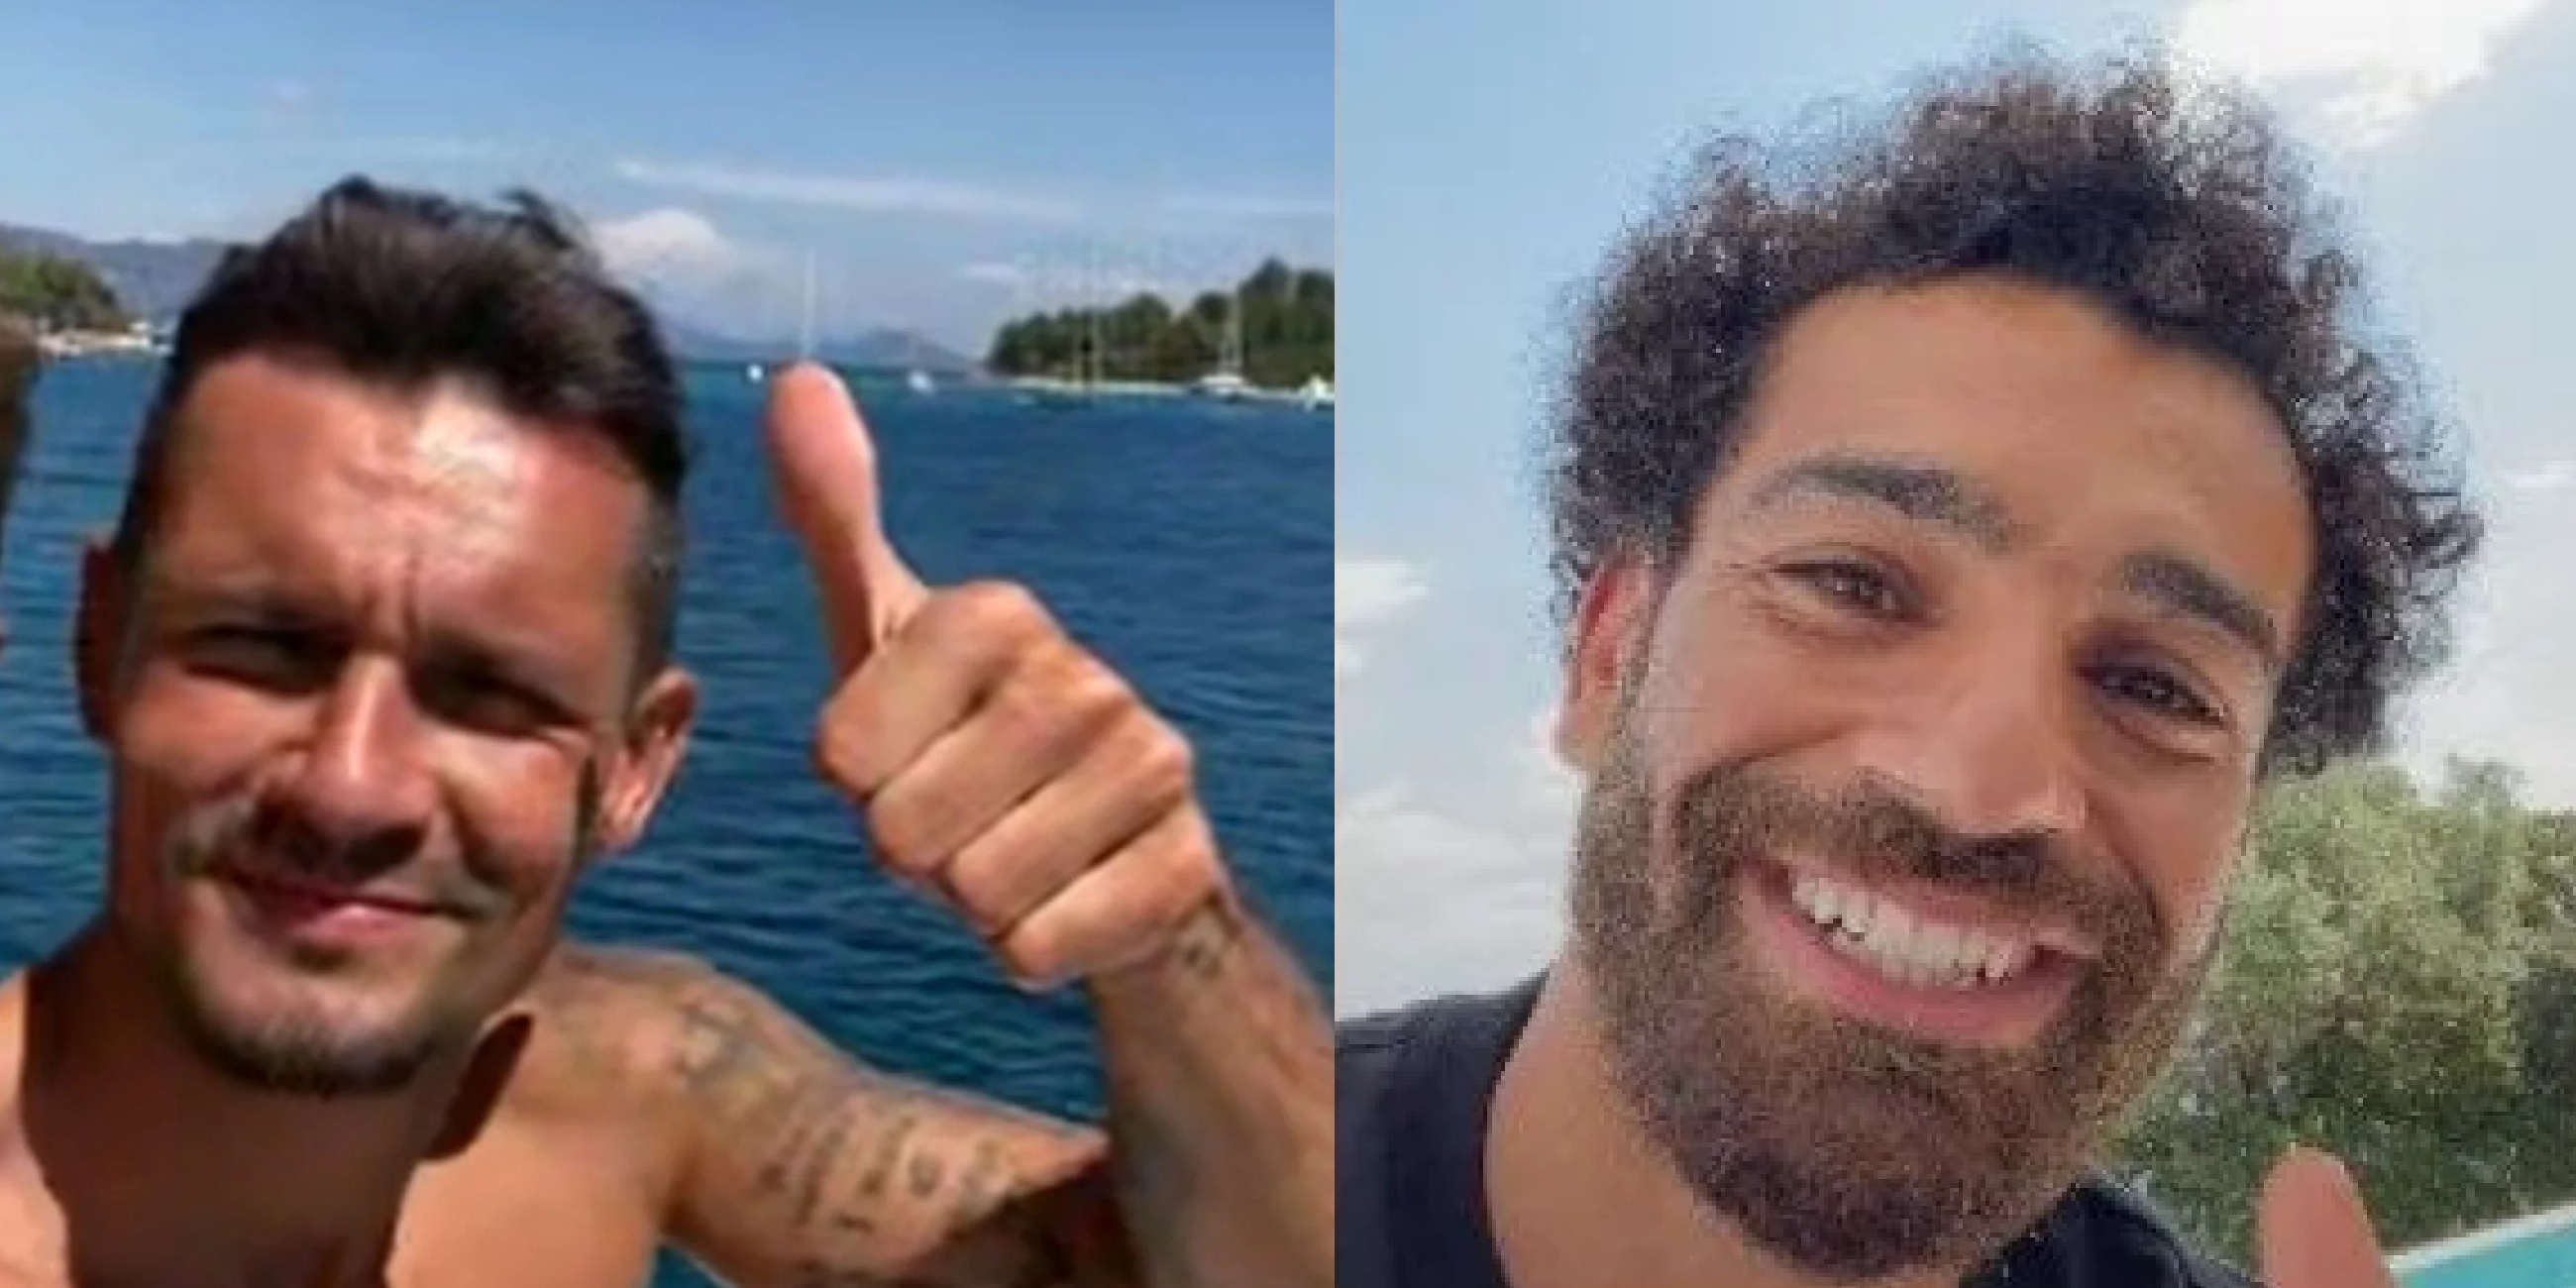 (Photo) Mo Salah's bromance with Zenit star still very much alive in wholesome social media post